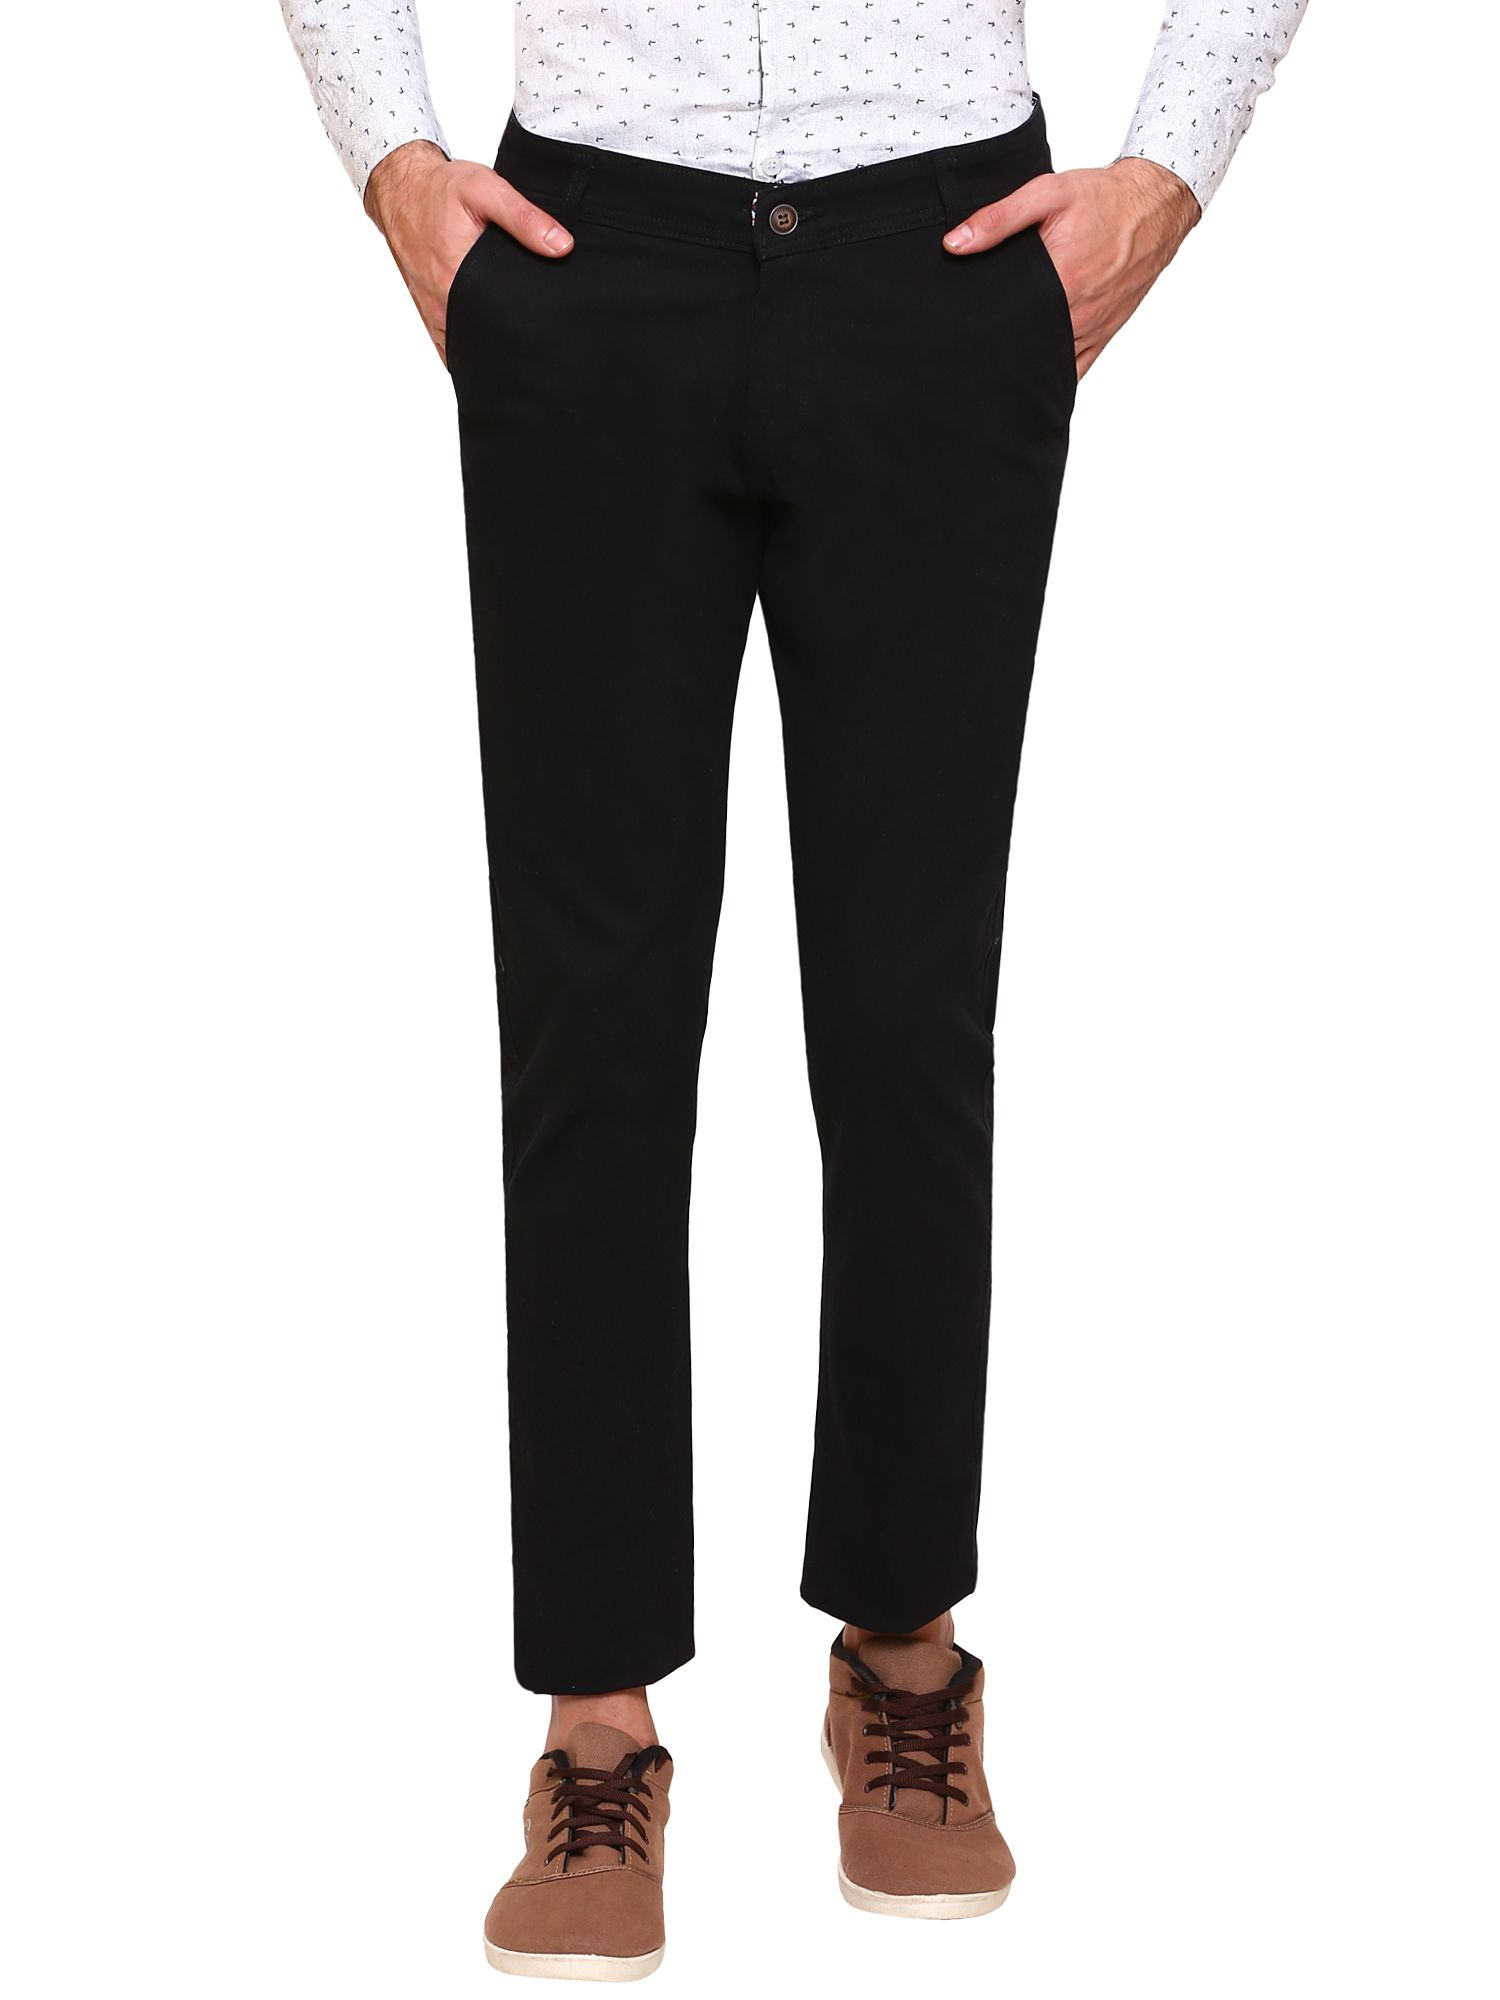 gradely Black Regular -Fit Flat Trousers